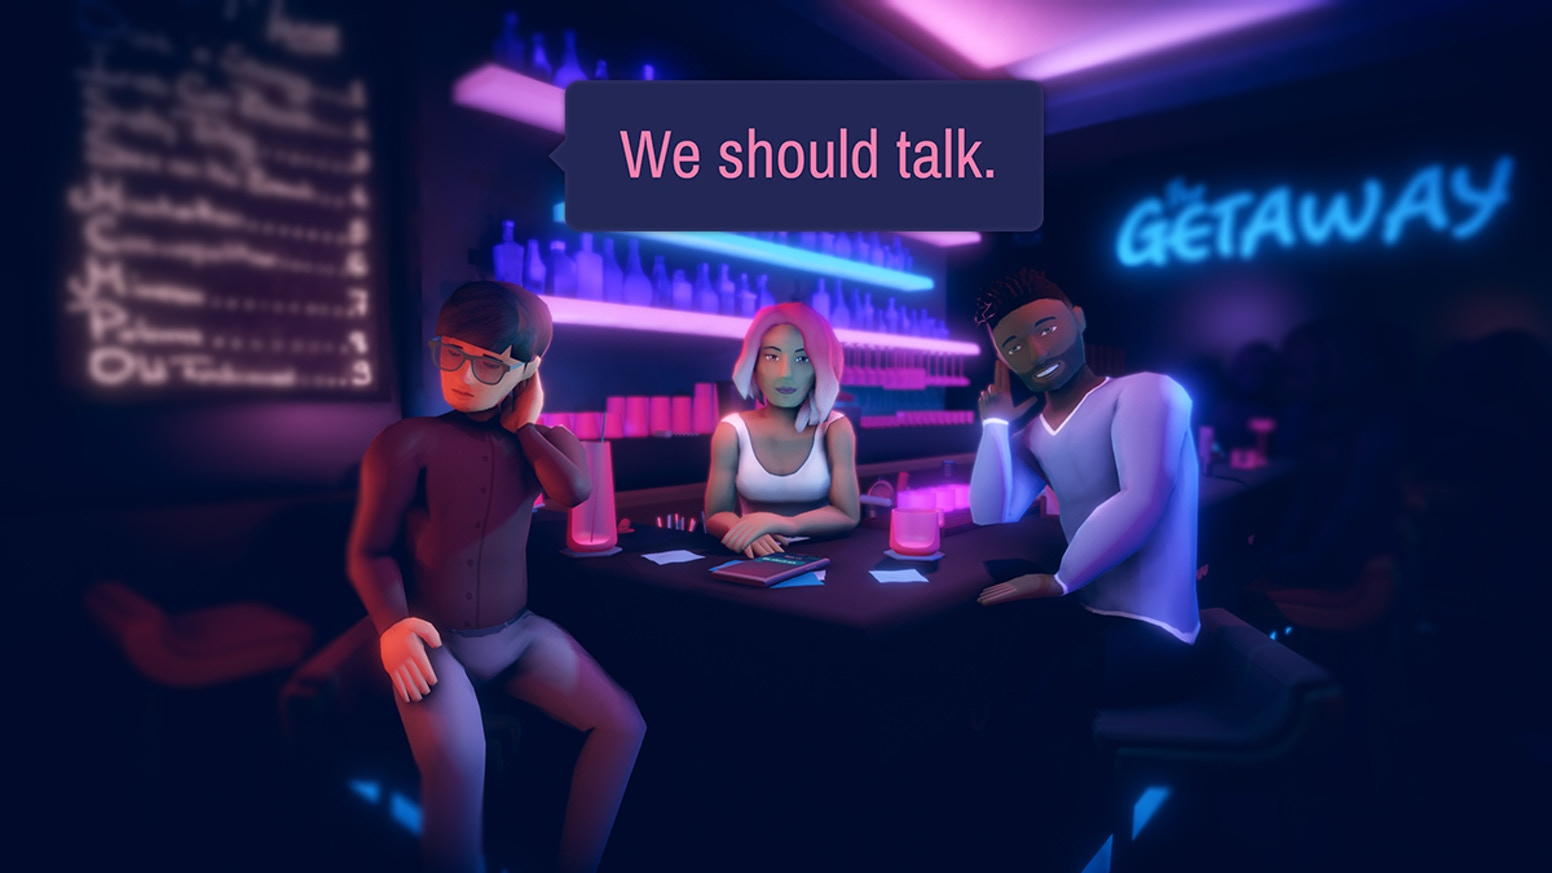 An award-winning videogame about the nuance of communication in relationships.